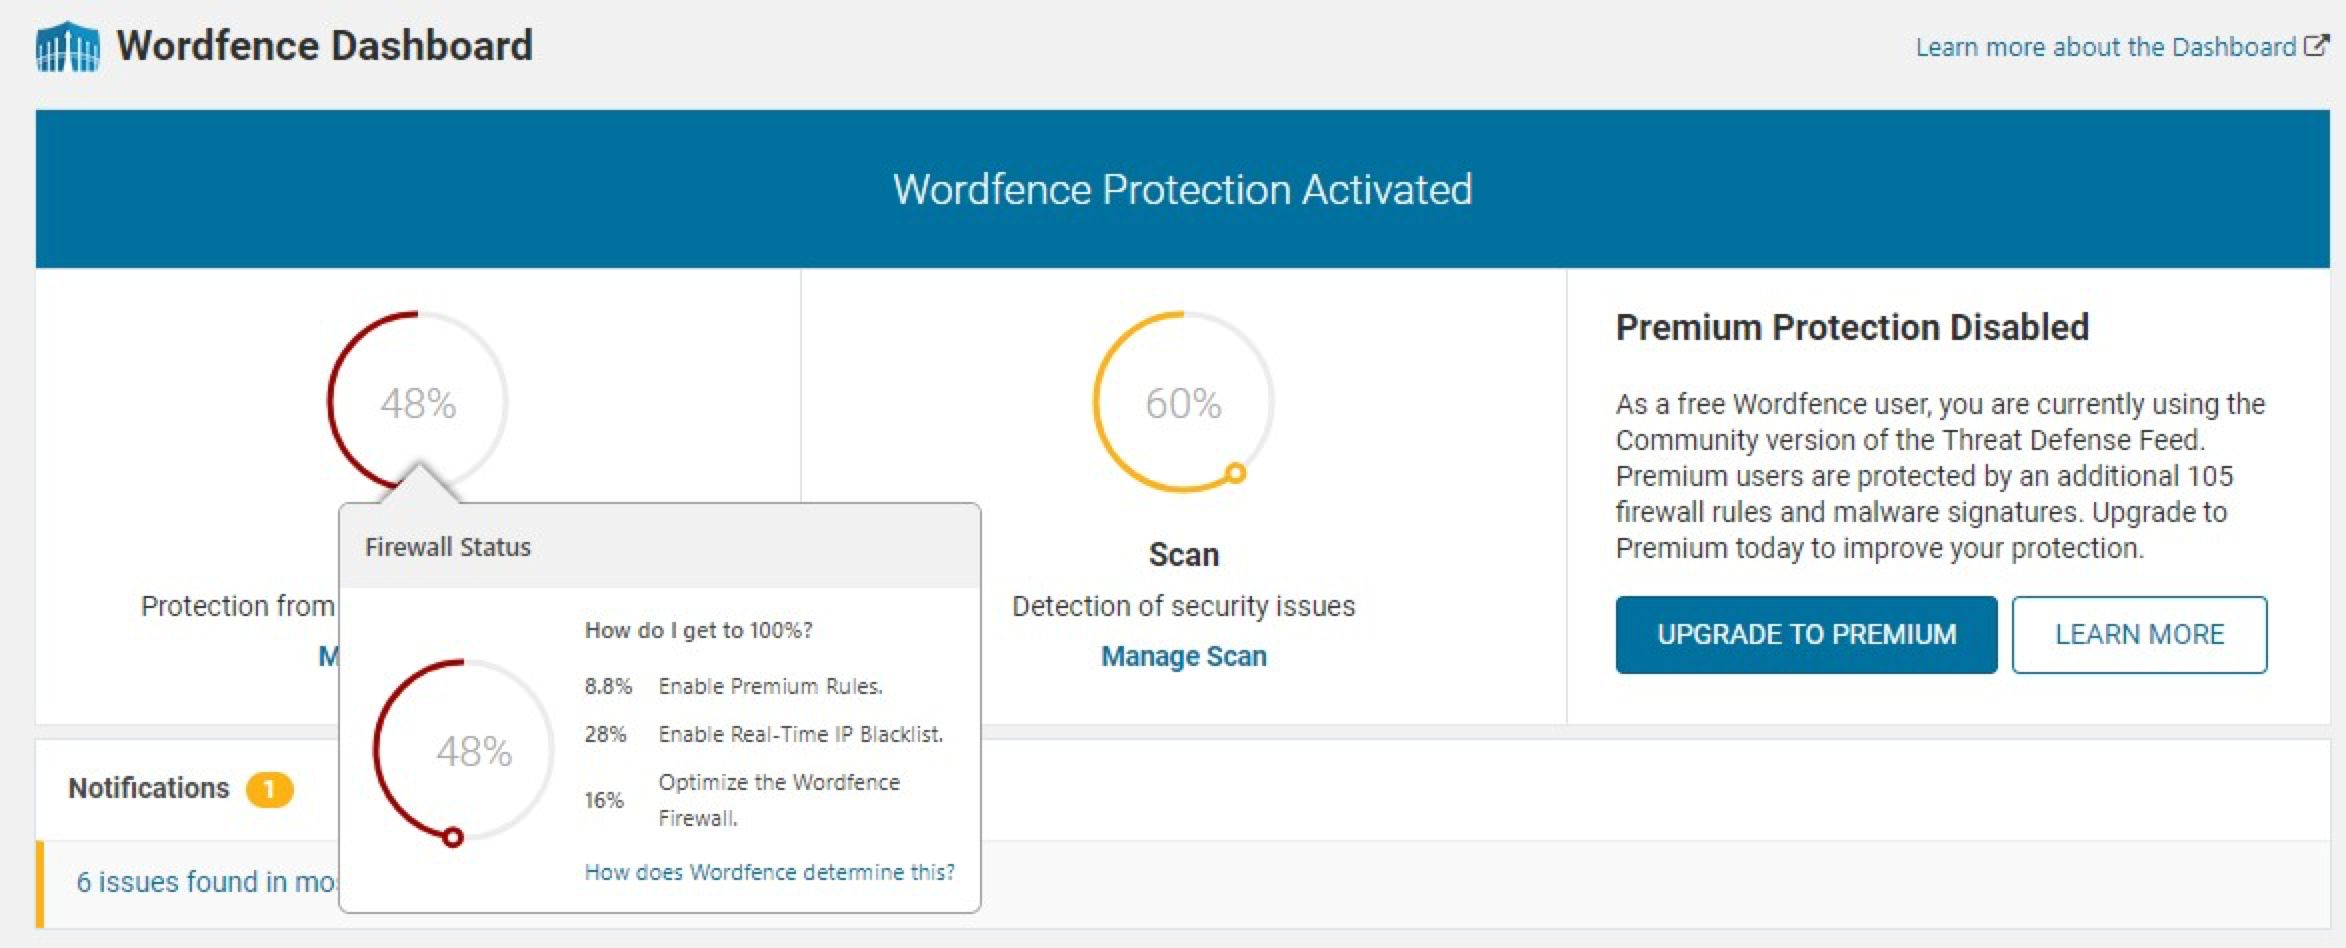 Additional steps to take popup